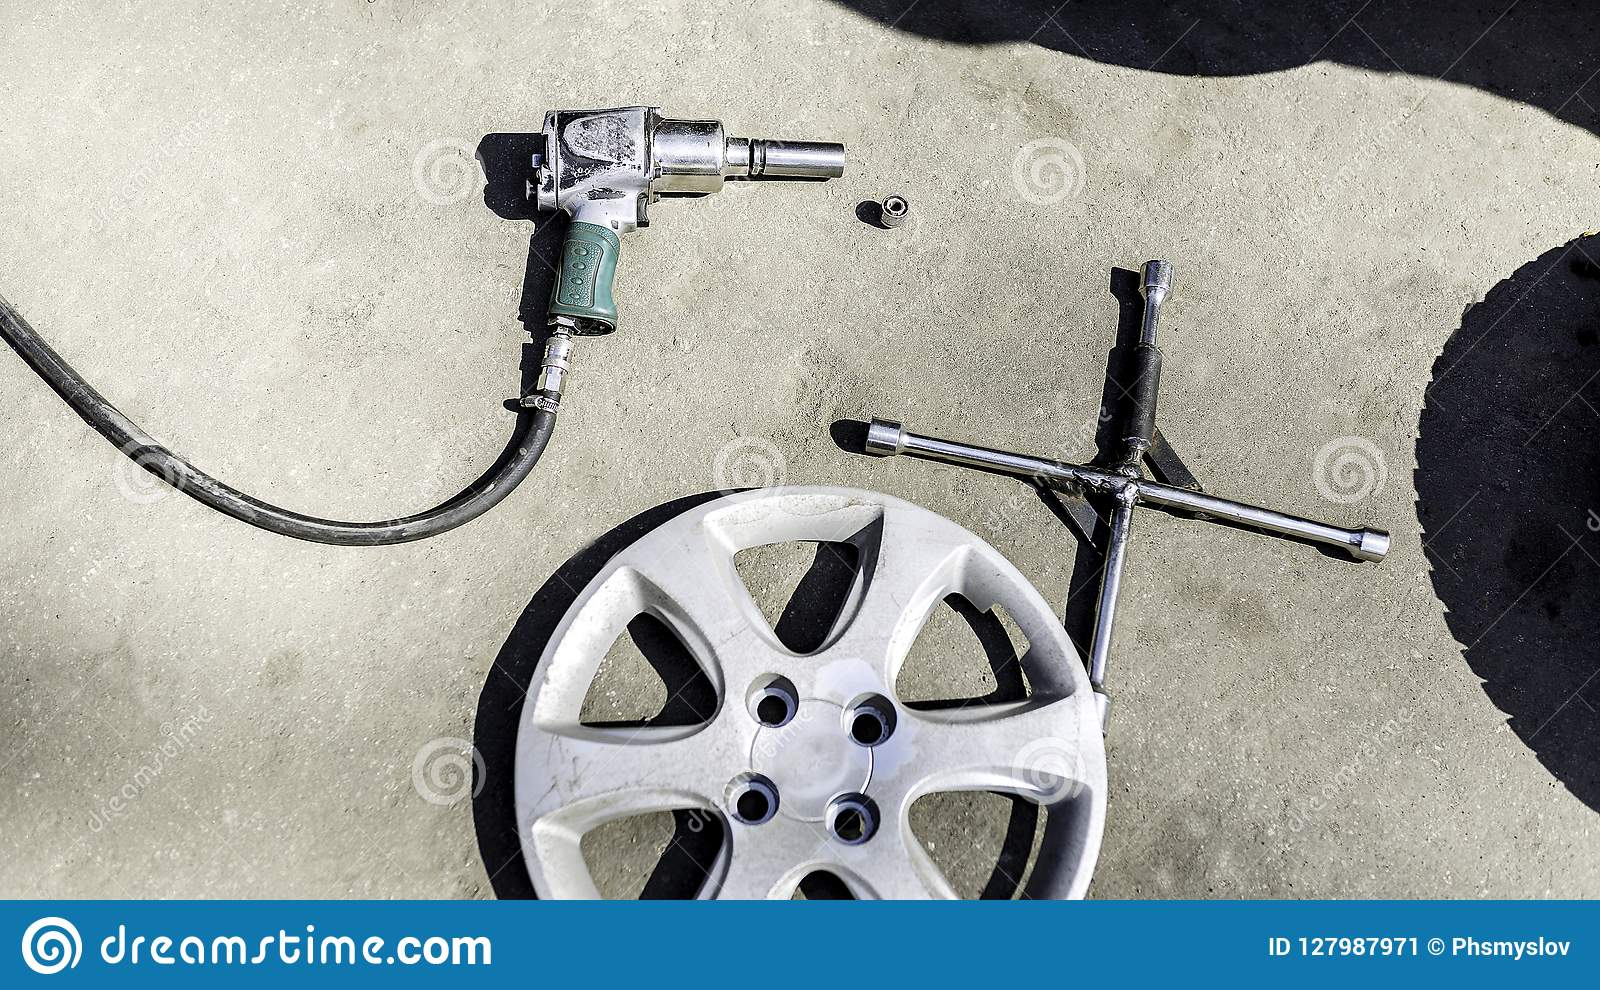 Car service, nut of fixture of a wheel of the car on a white background,